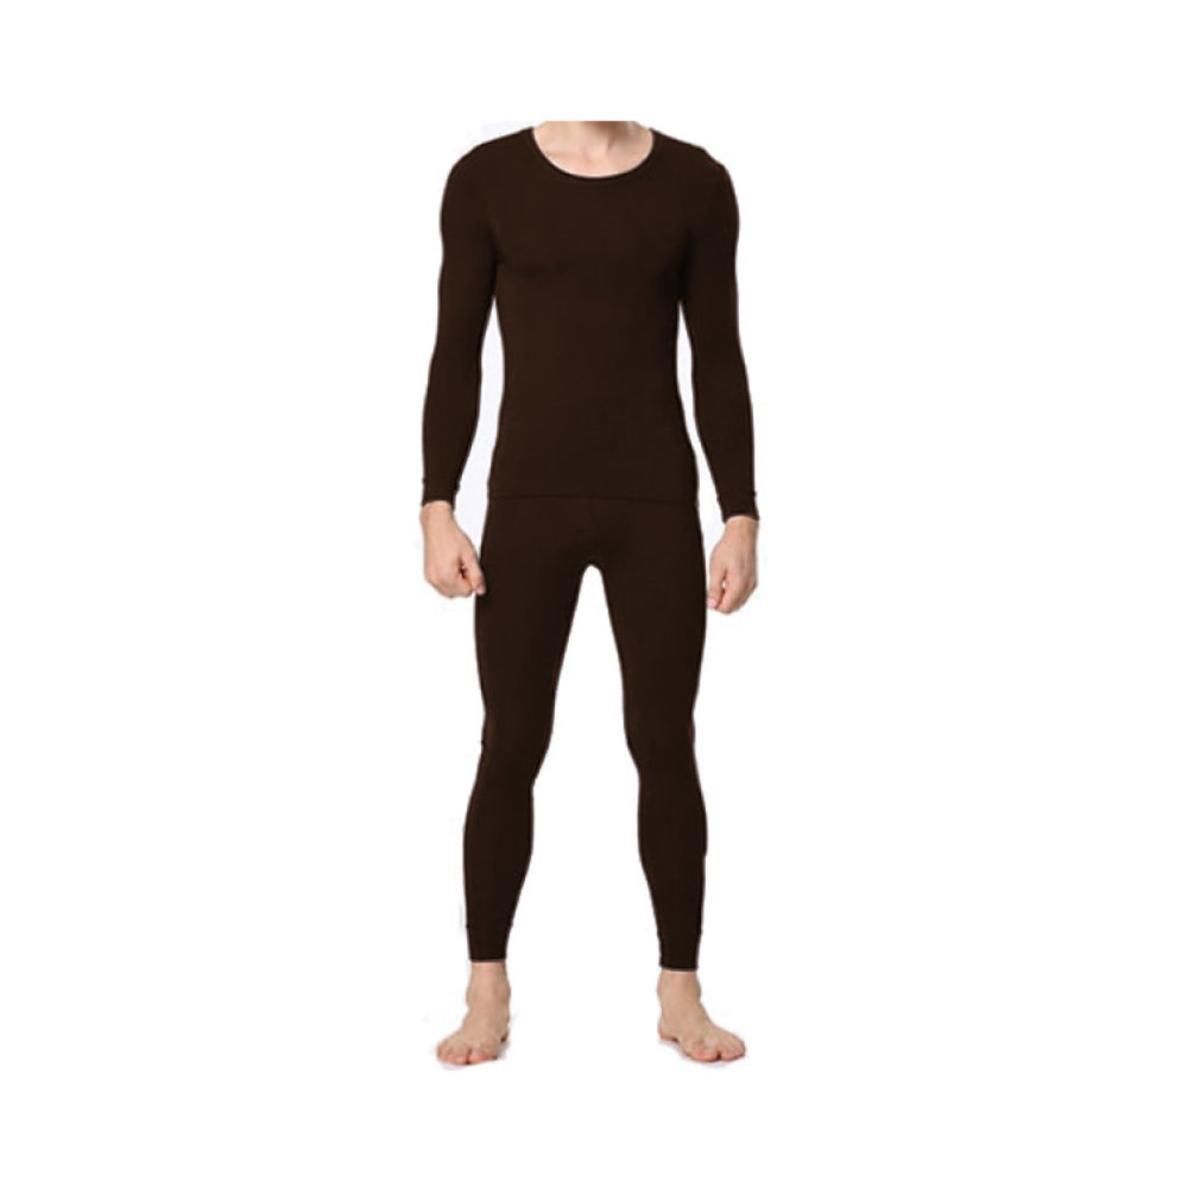 Find great deals on eBay for base layer set. Shop with confidence.